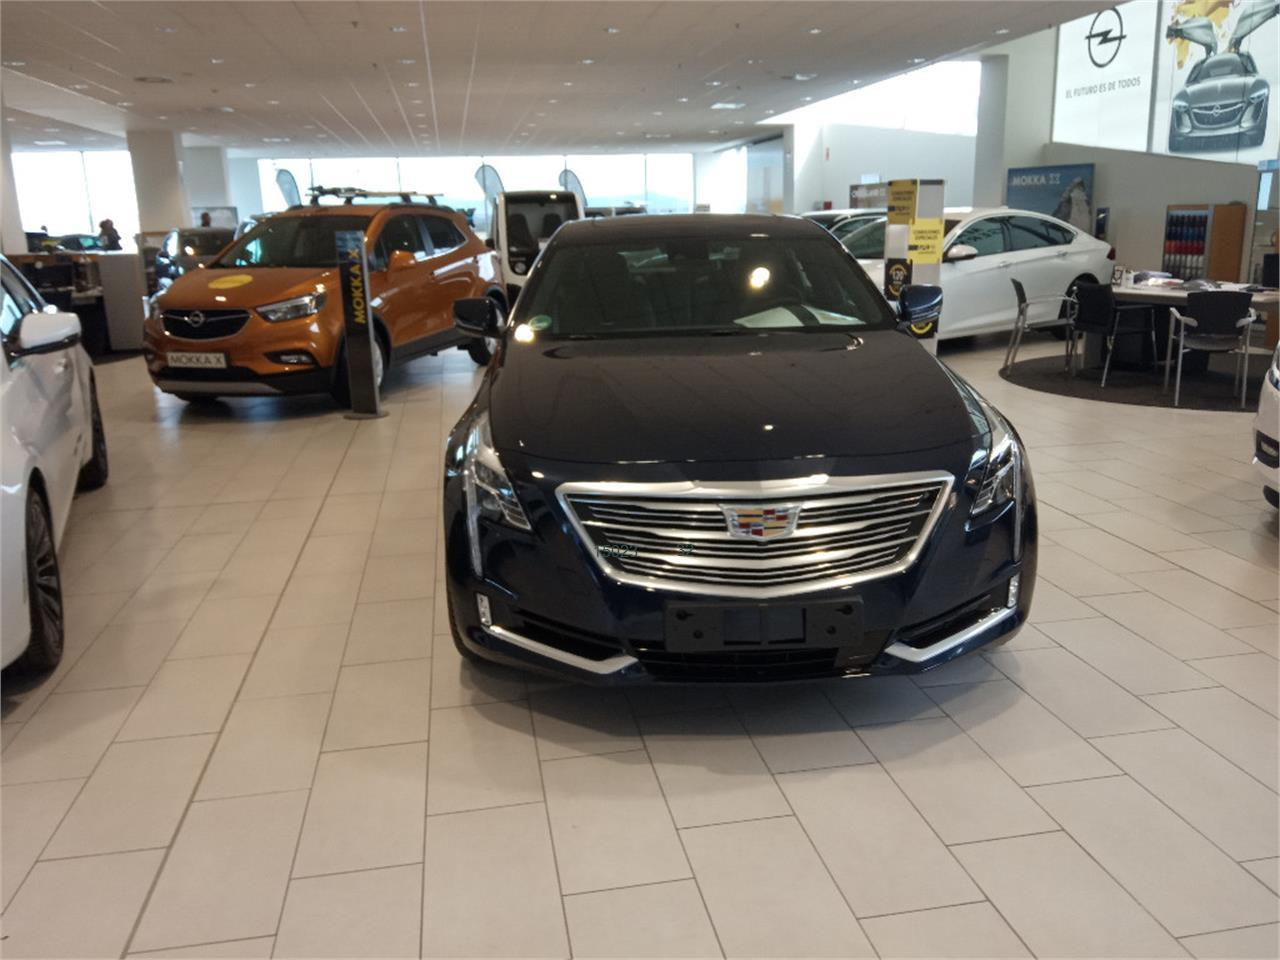 CADILLAC CT6 AWD 3.0 V6 AT8 417 CV TWIN TURBO de venta de venta por 78990